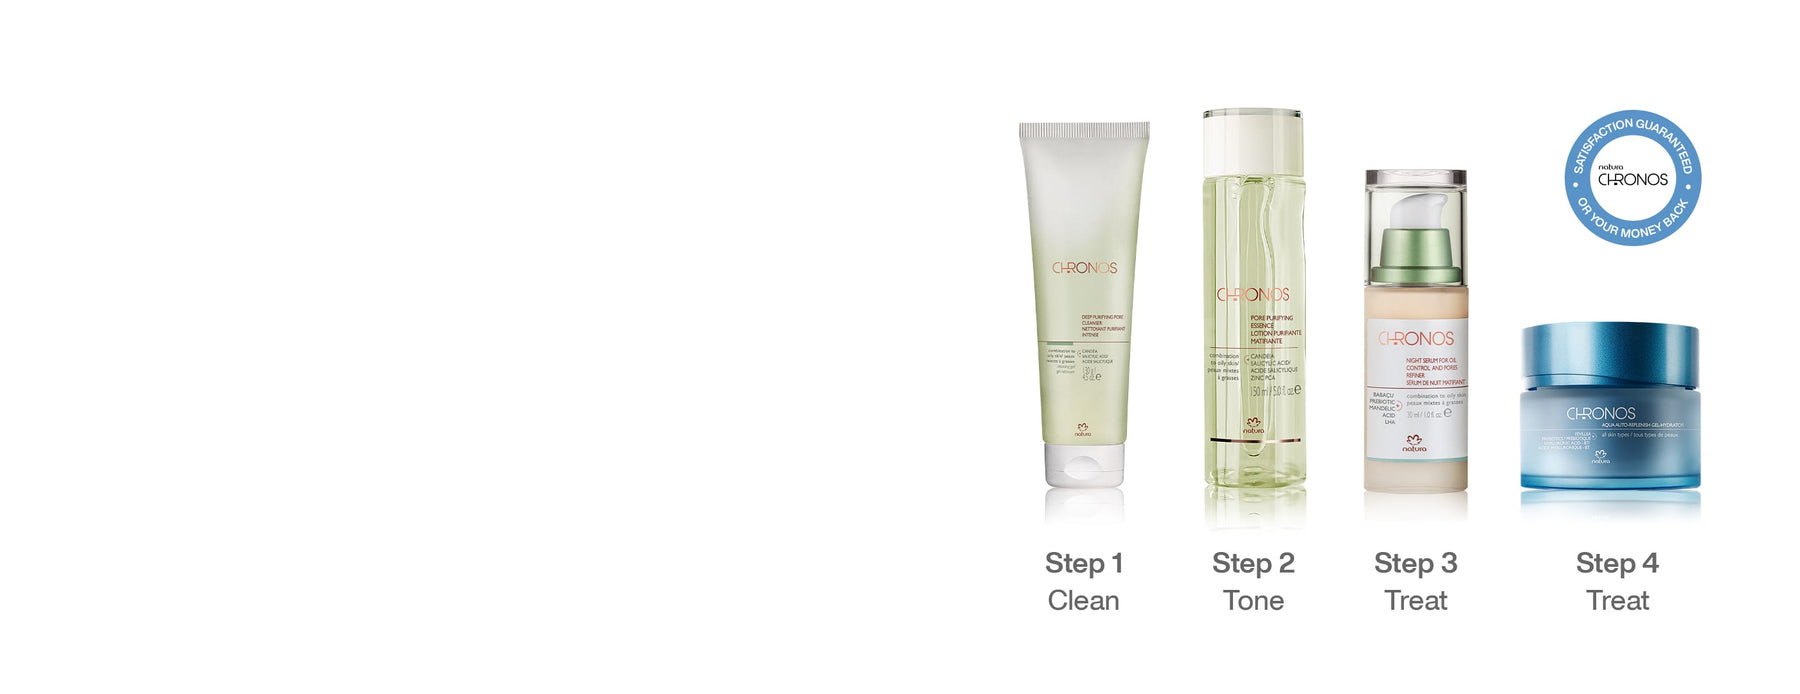 Oil Control and Pore Refiner Routine